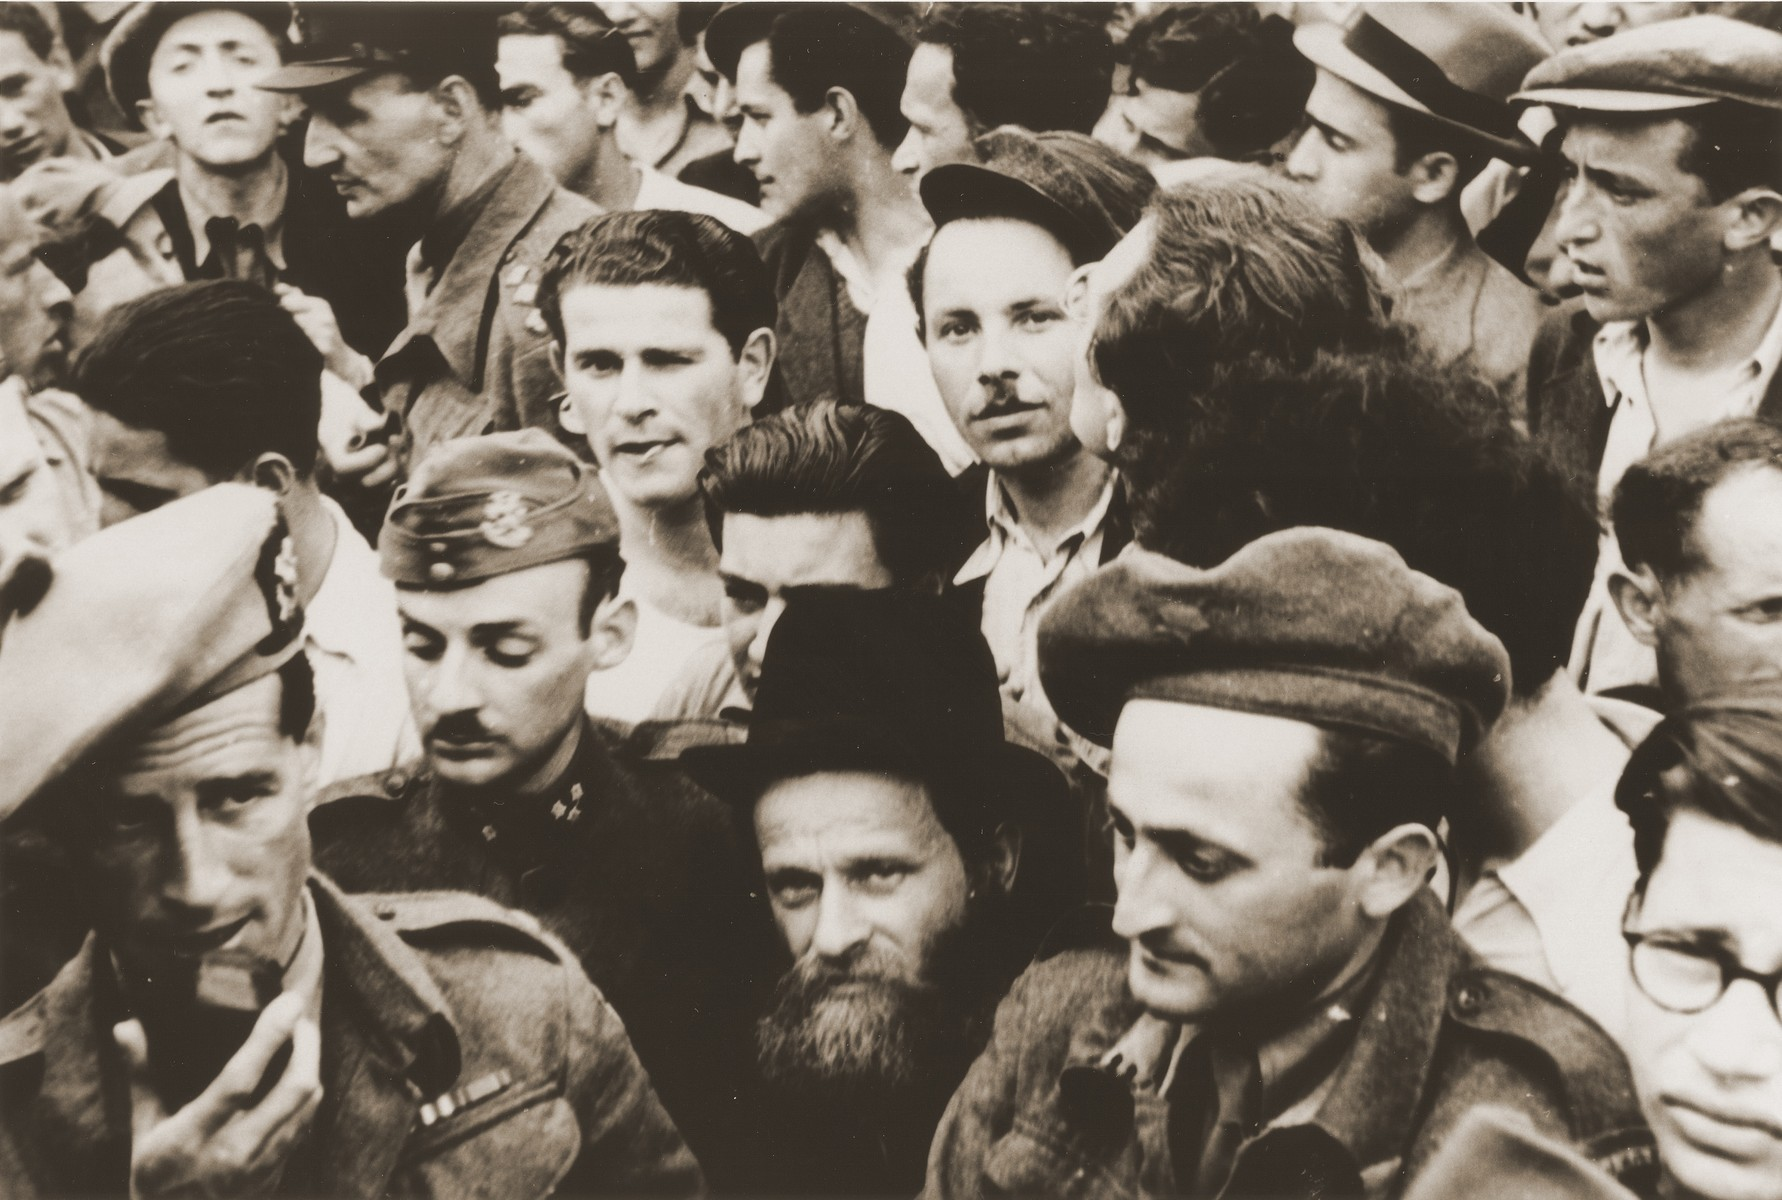 A crowd of Jewish DPs stand behind British soldiers at a ceremony or demonstration in the Bergen-Belsen displaced persons camp.  Rabbi Helfgott is pictured in uniform in the foreground at the right.